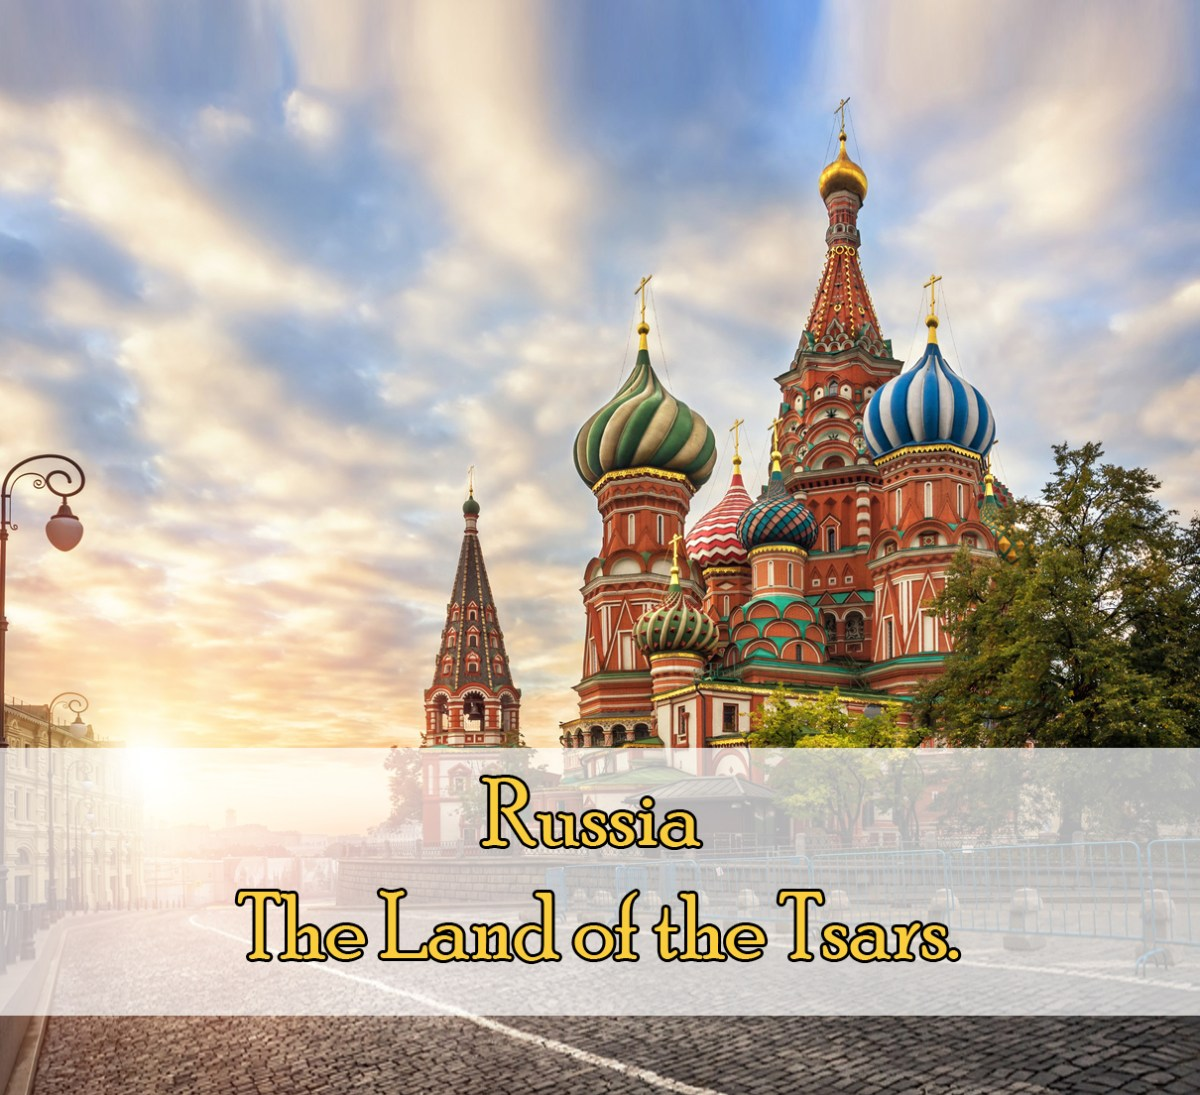 Russia – The Land of the Tsars